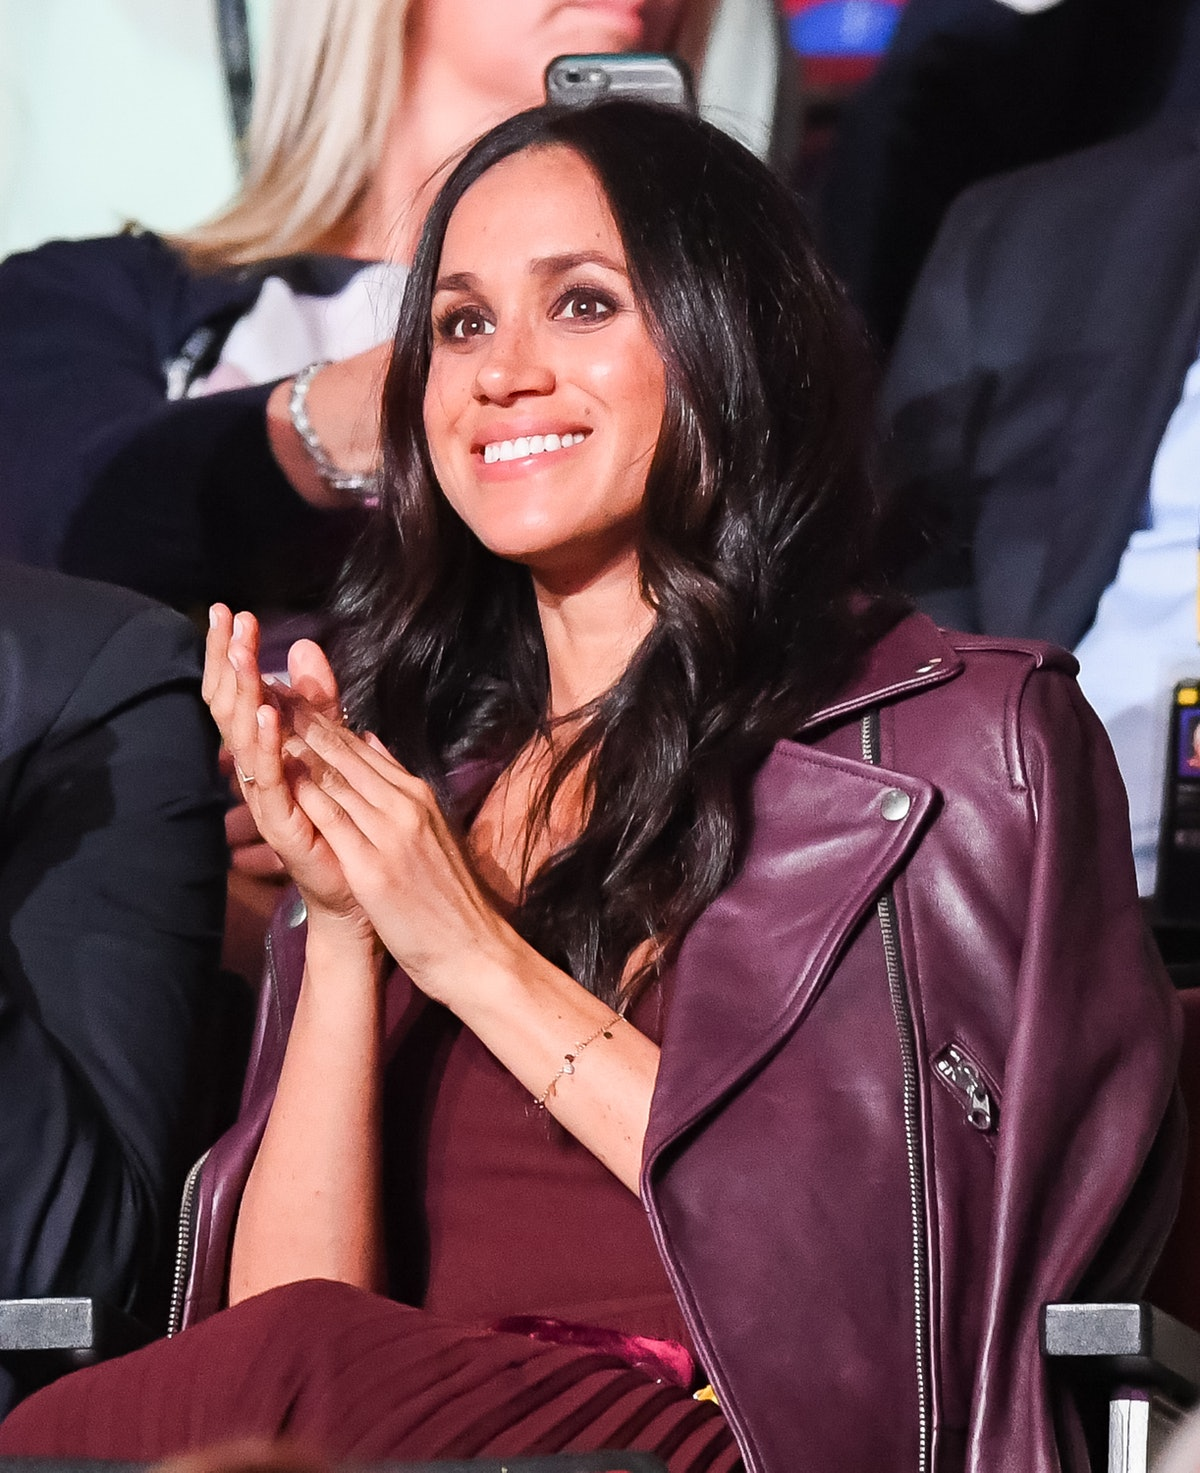 Markle, shown here in a burgundy dress and matching motorcycle jacket, applauded at the Invictus Gam...